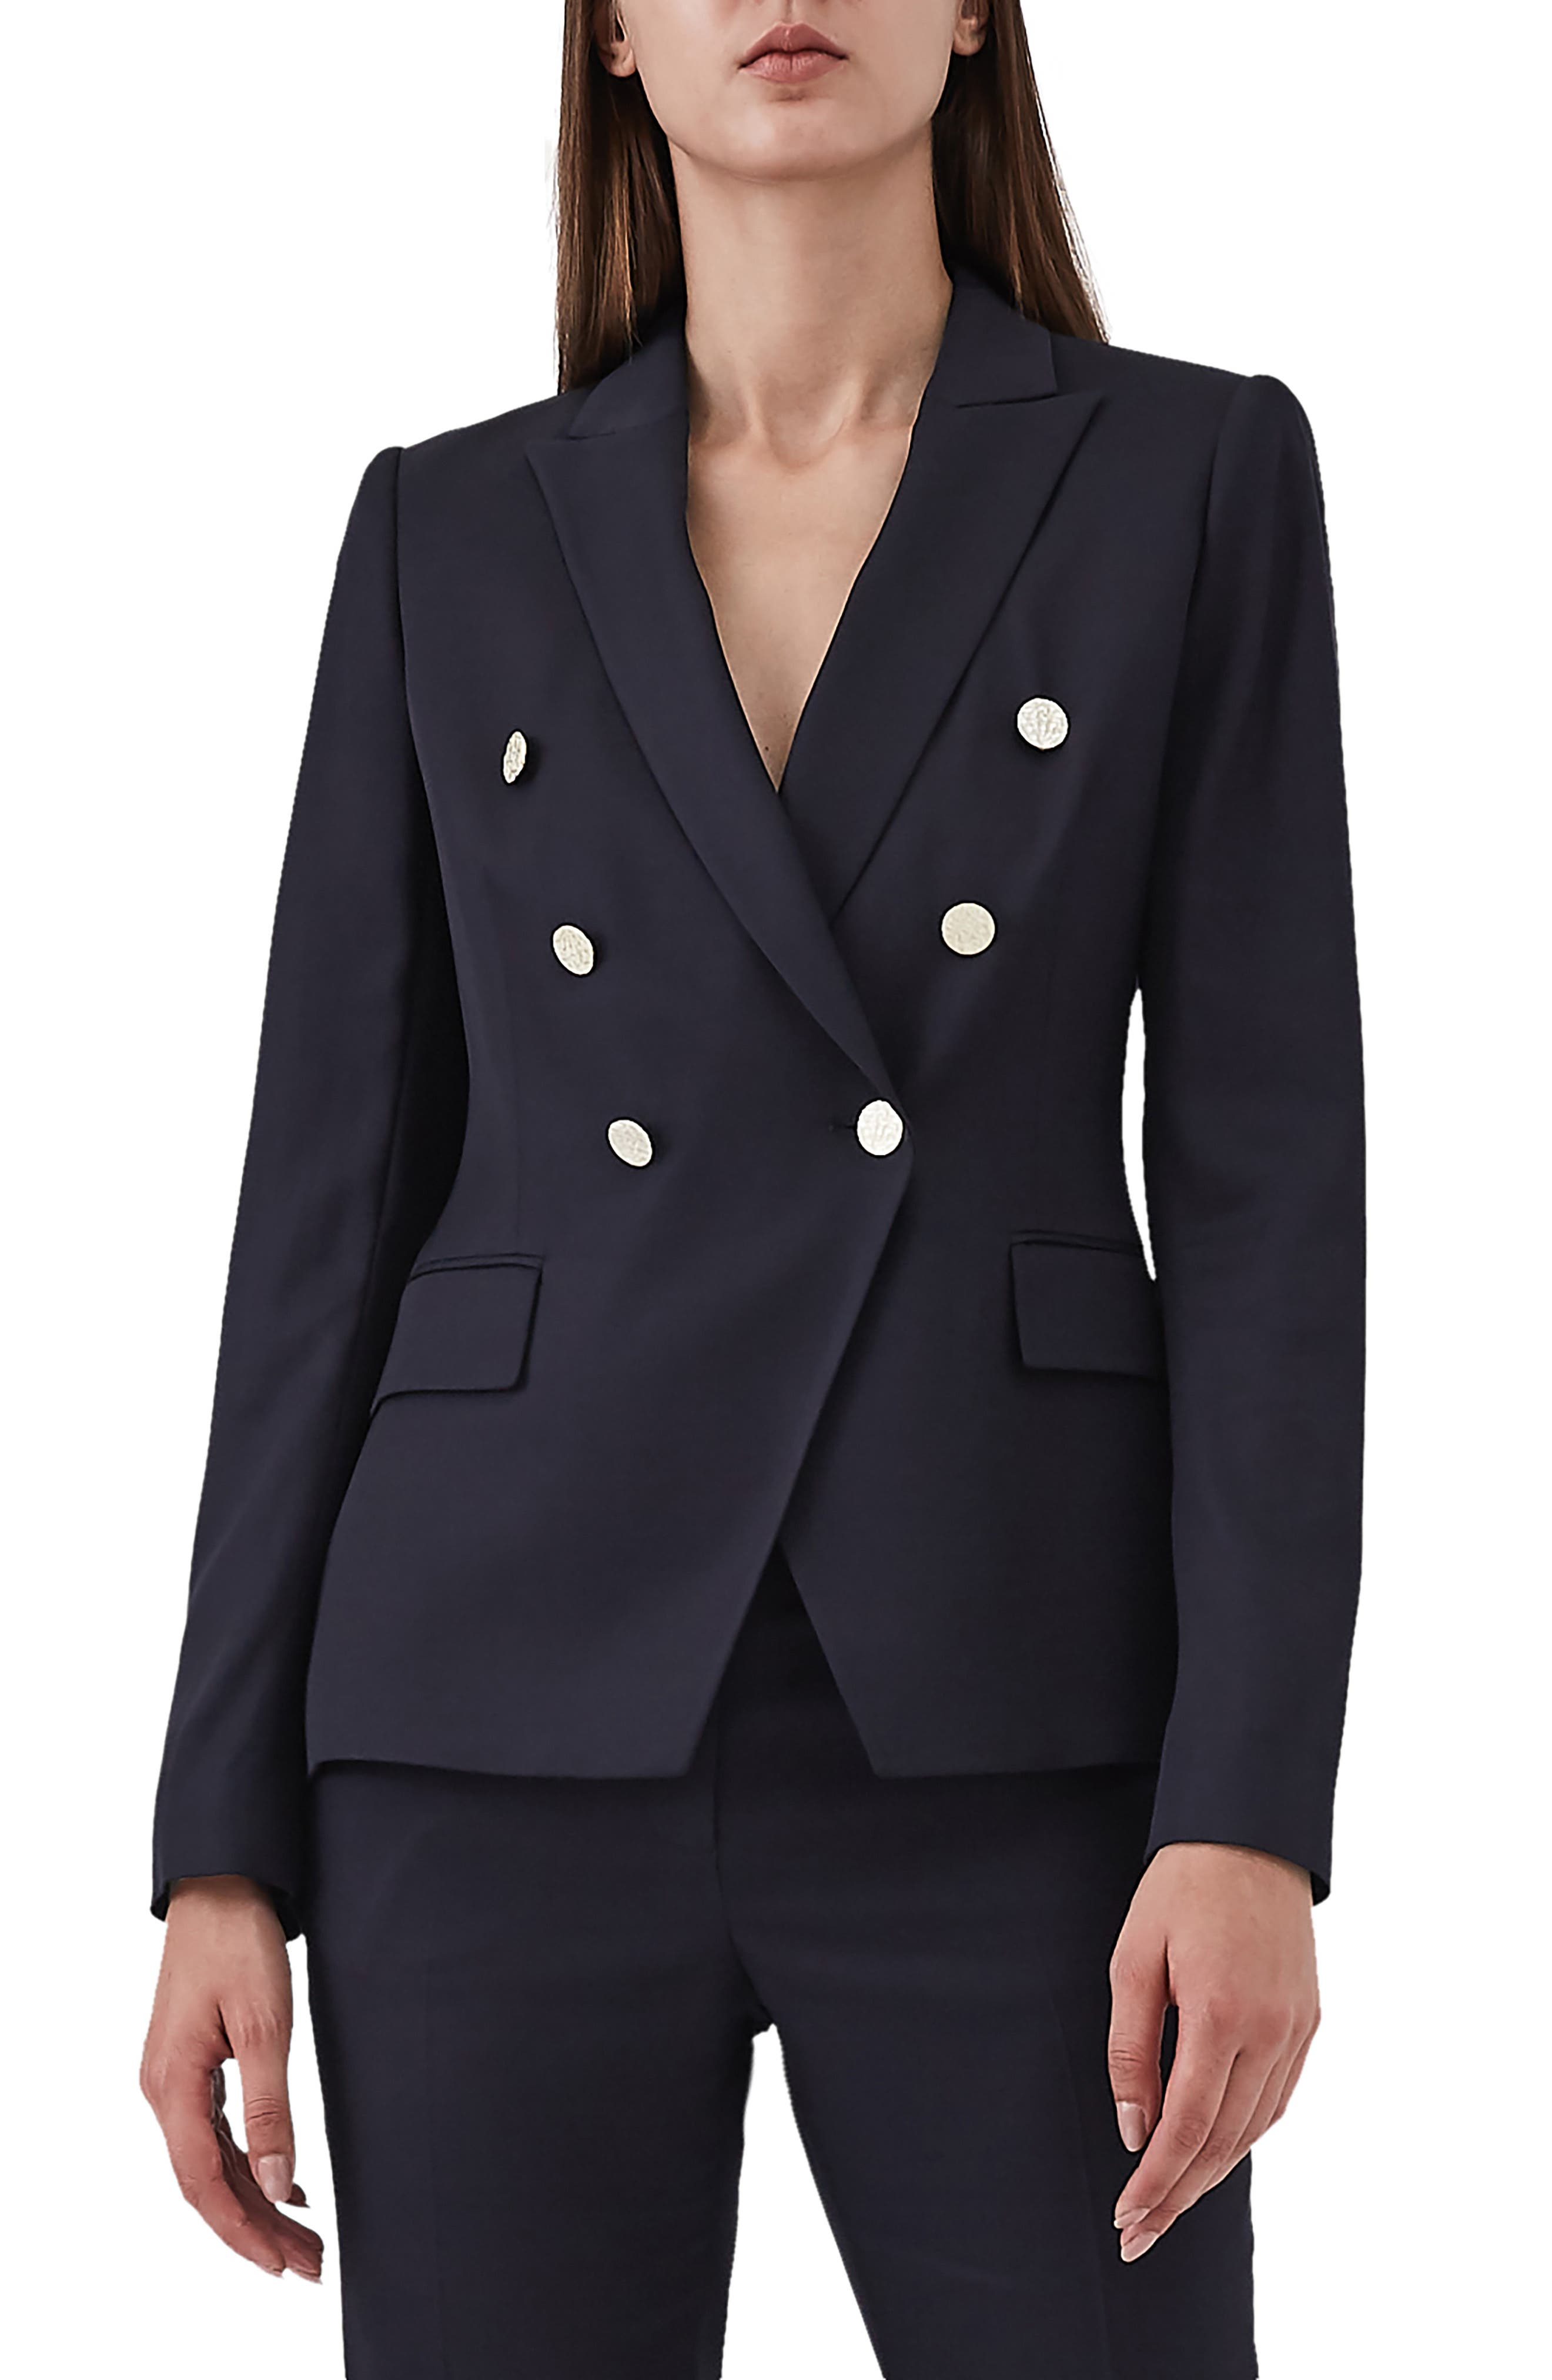 Tally Double Breasted Wool Blend Jacket,                         Main,                         color, 410